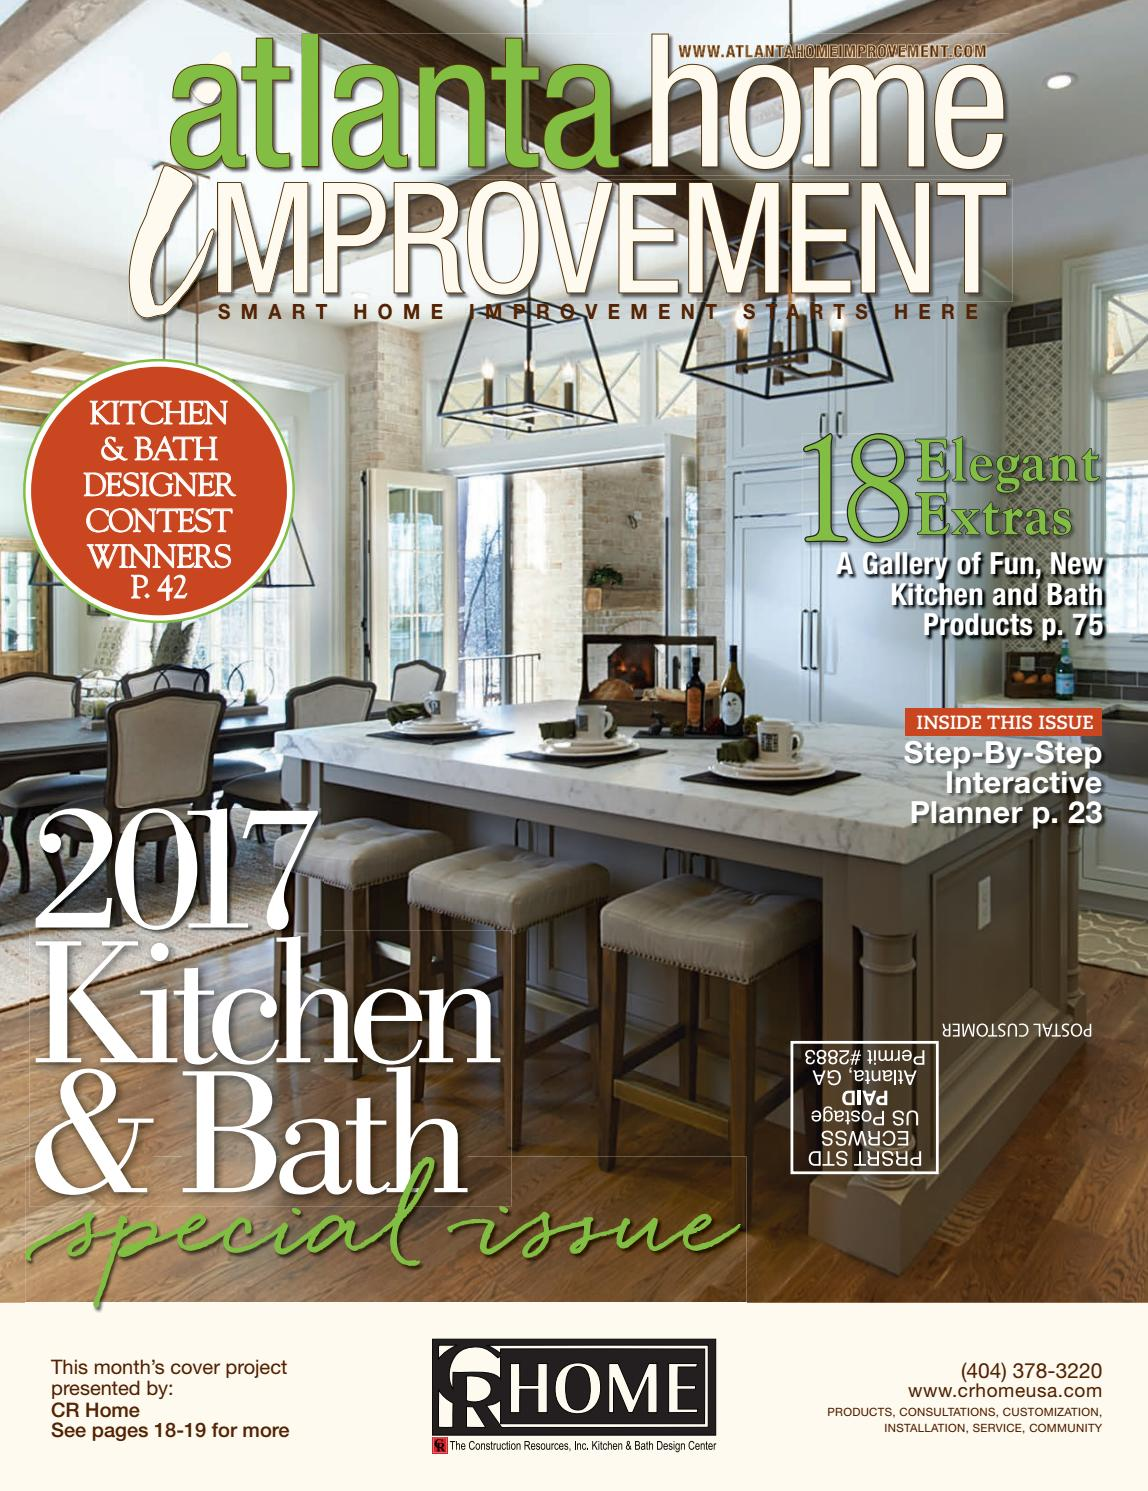 Atlanta Home Improvement 2017 Kitchen Bath Special Issue By My Home Improvement Magazine Issuu